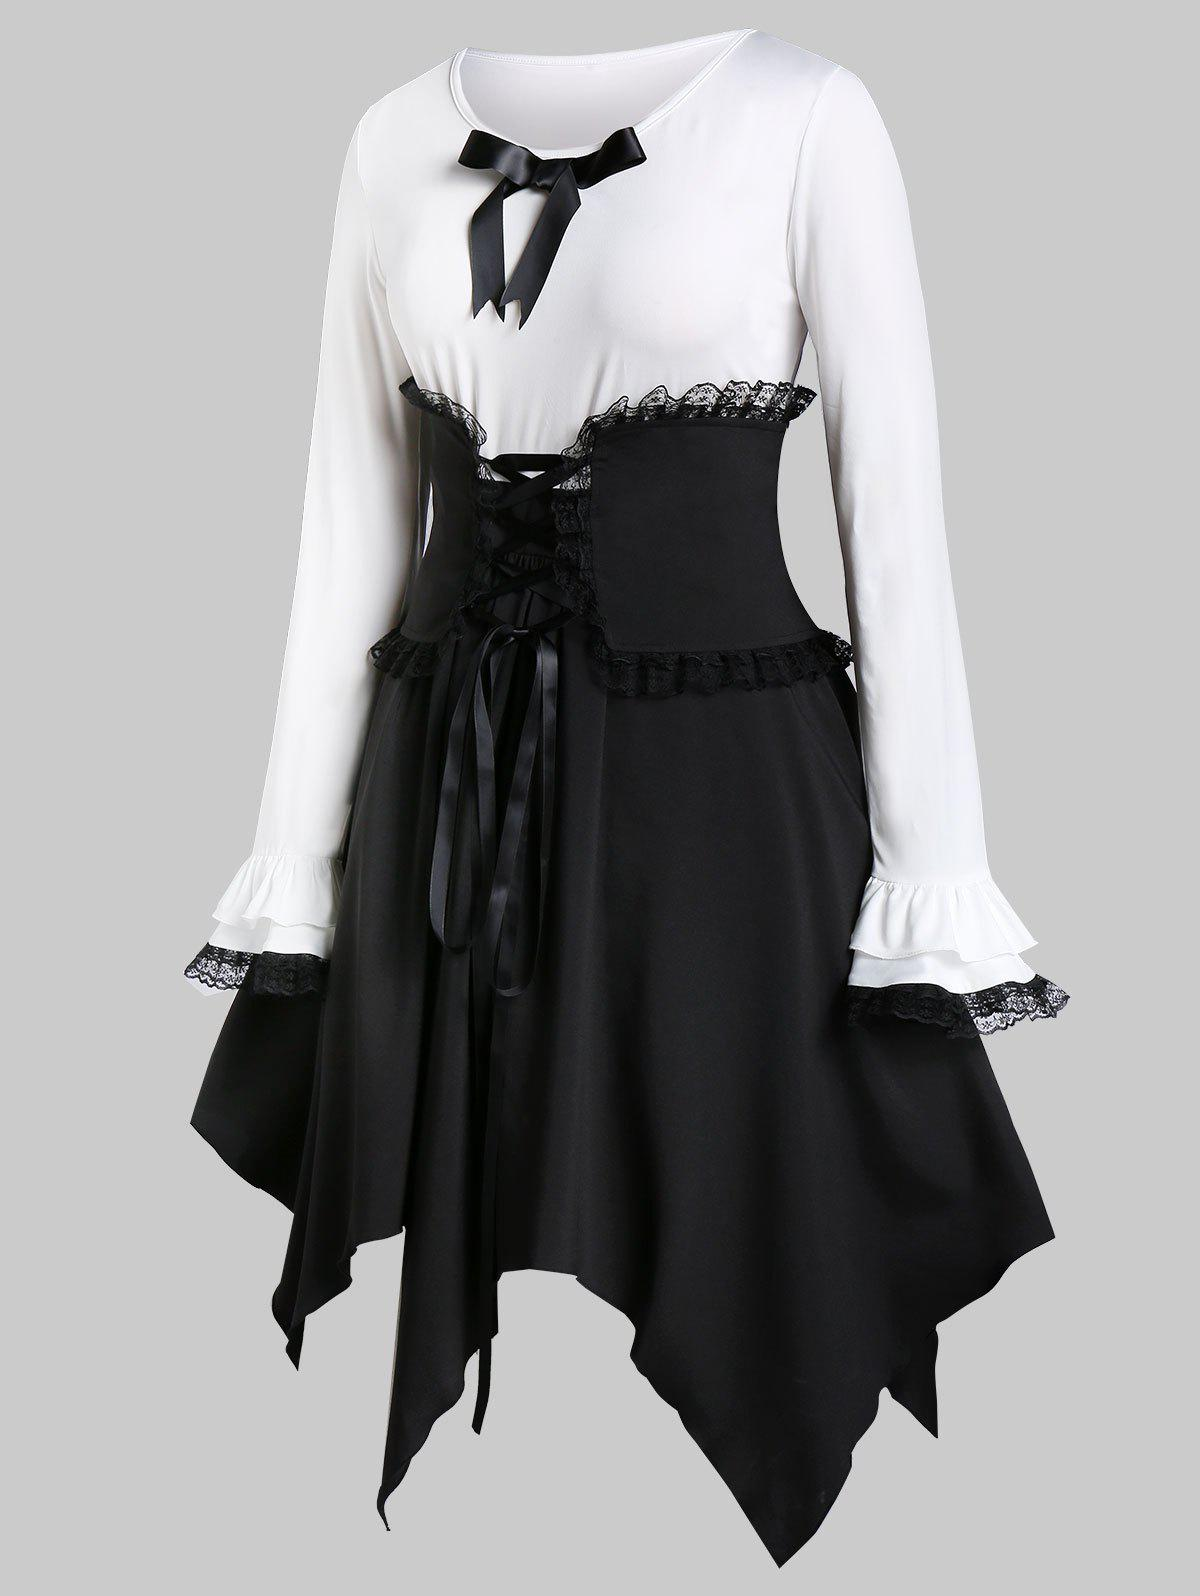 Plus Size Handkerchief Two Tone Dress With Lace Up Corset Belt